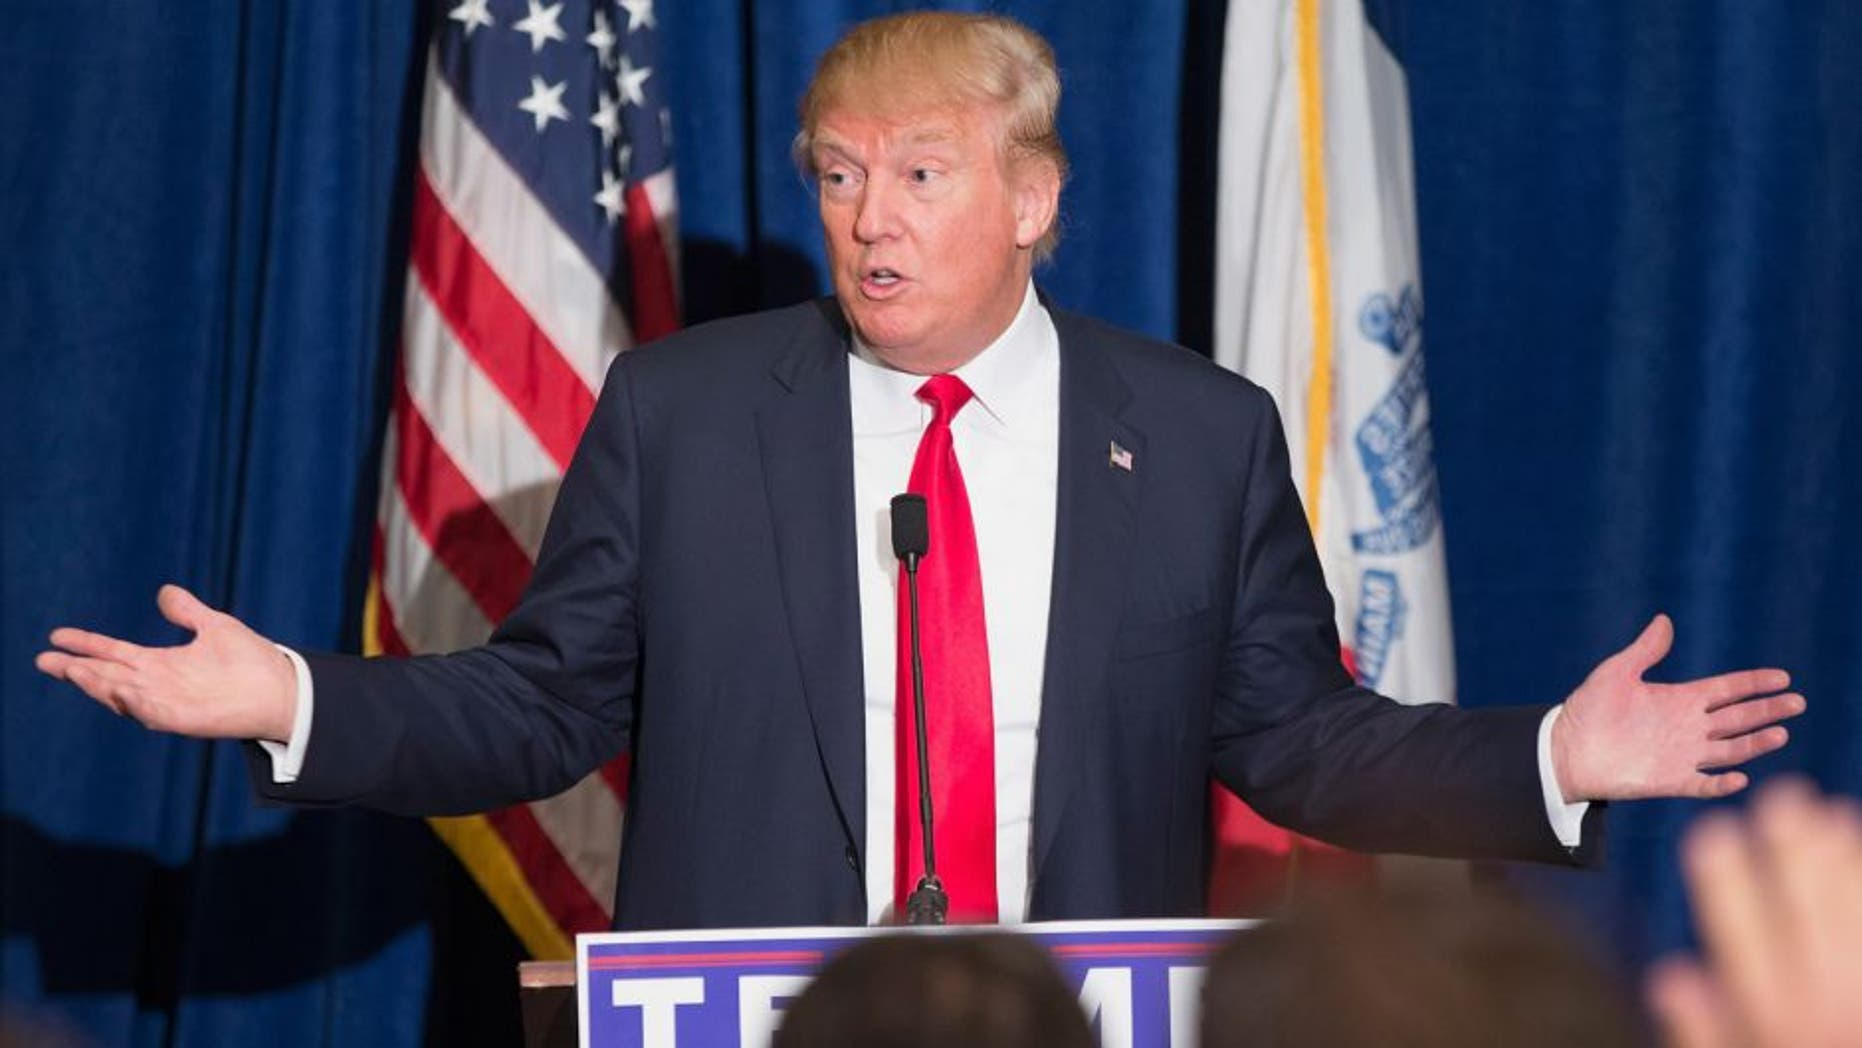 DUBUQUE, IA - AUGUST 25: Republican presidential candidate Donald Trump speaks at a press conference which he held before his campaign event at the Grand River Center on August 25, 2015 in Dubuque, Iowa. Trump leads most polls in the race for the Republican presidential nomination. (Photo by Scott Olson/Getty Images)